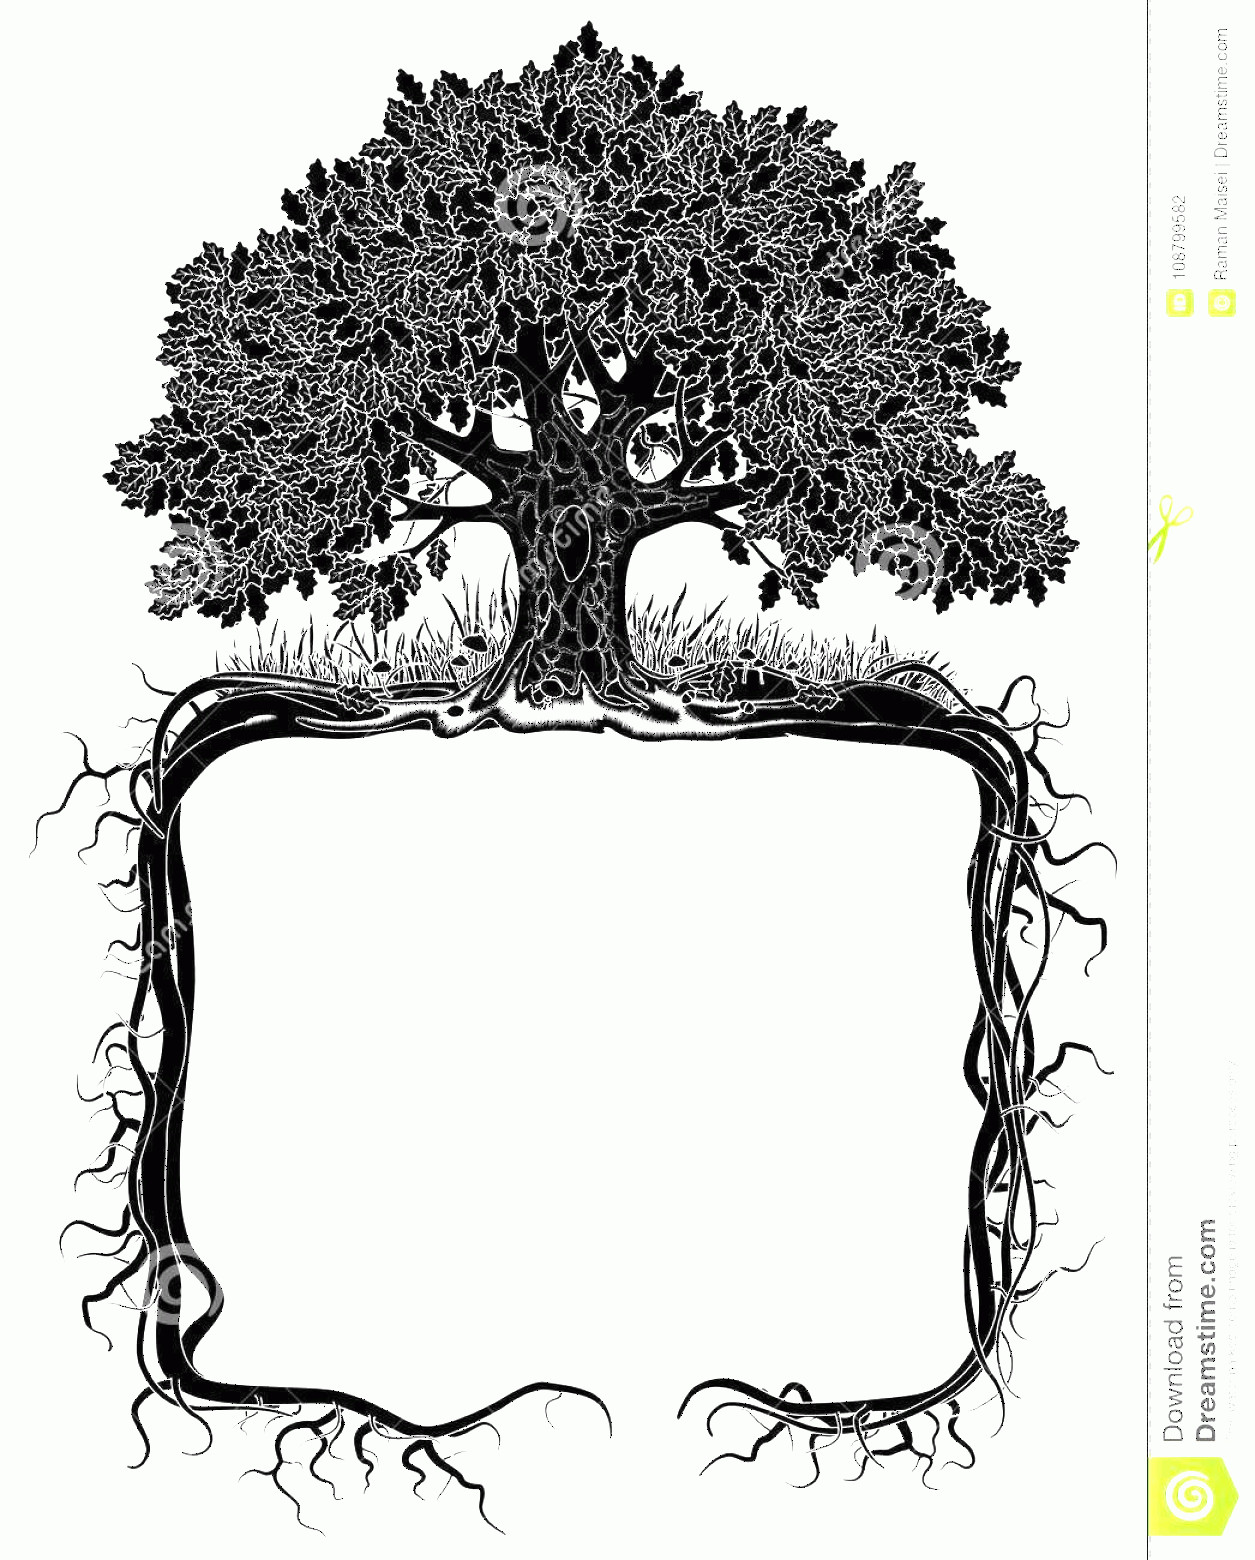 Vector Tree With Roots Drawing: Oak Tree Roots Frame Artistic Banner Page Design Vintage Engraving Stylized Drawing Vector Illustration Image